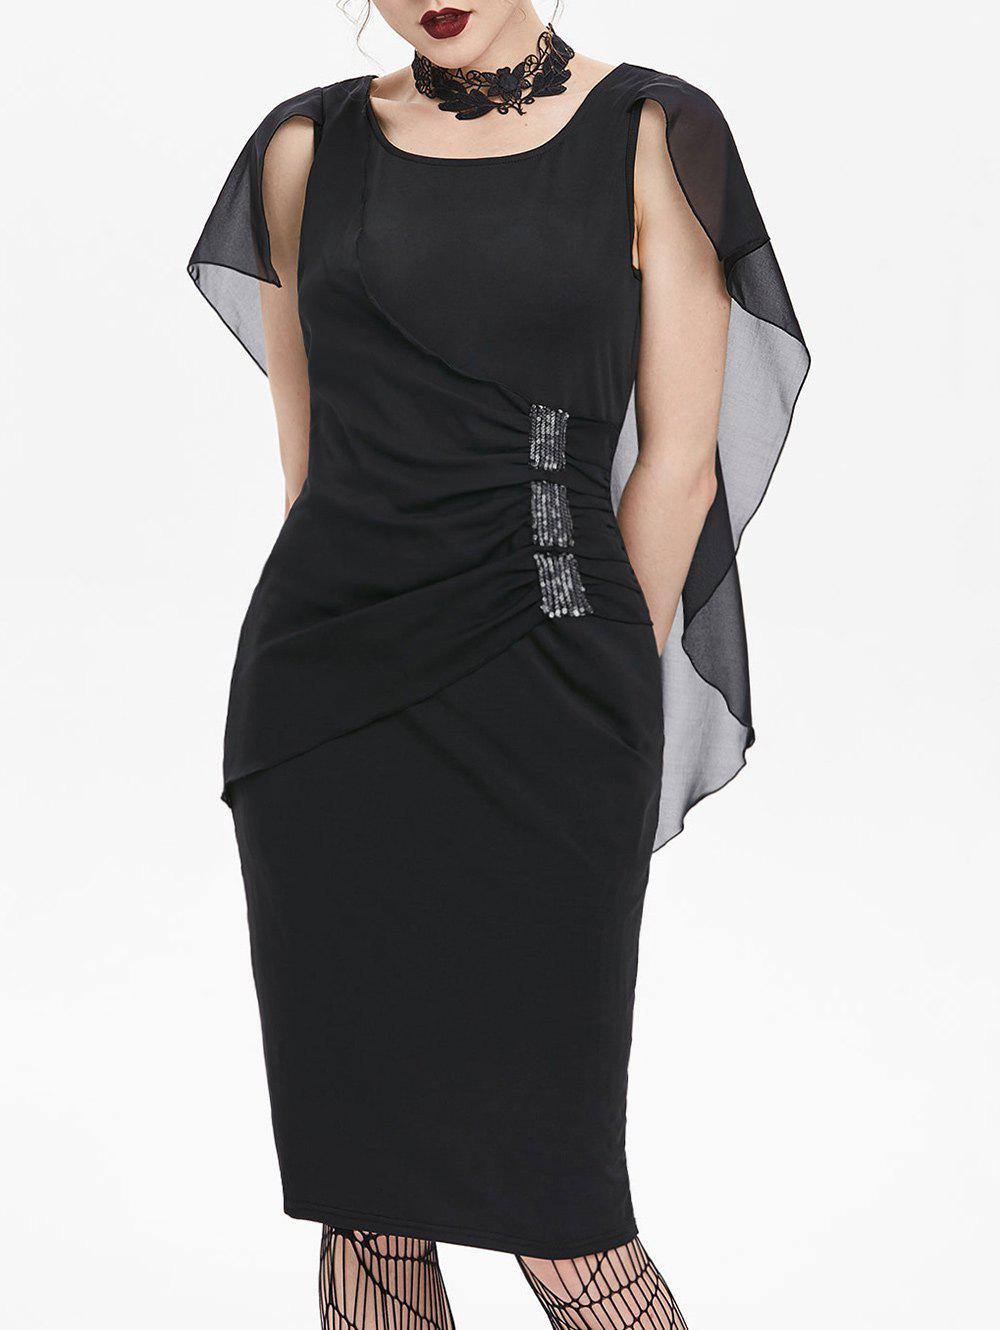 Chiffon Insert Ruched Cape Bodycon Gothic Dress - BLACK M